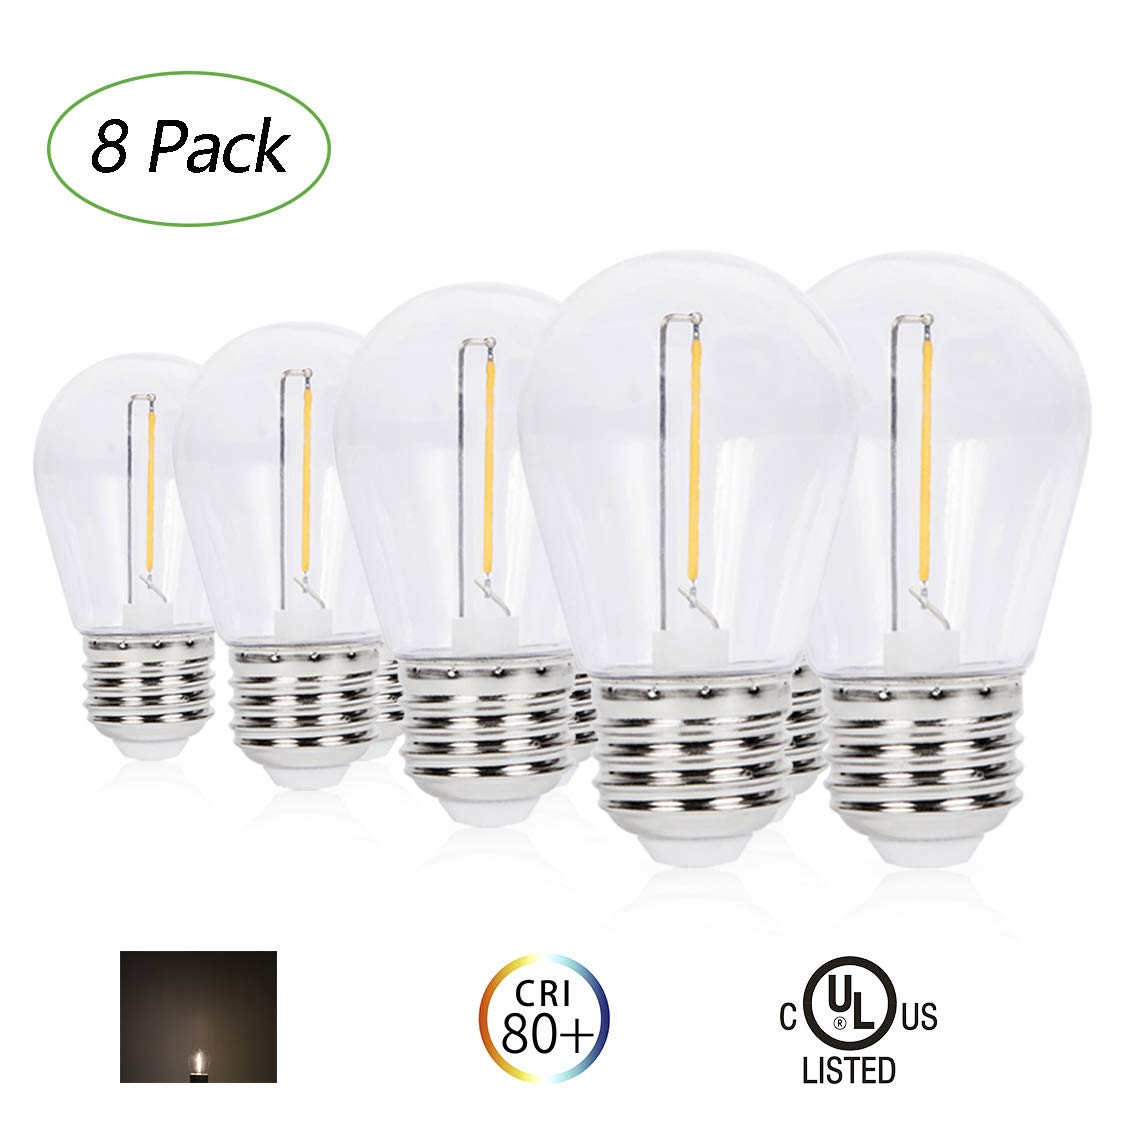 1W PC Cover Non-Dimmable 70 Lumens 2700K Warm White Light Without String Strands E26 Base 8 Pack UL Listed EFFOE Waterproof S14 LED Bulbs